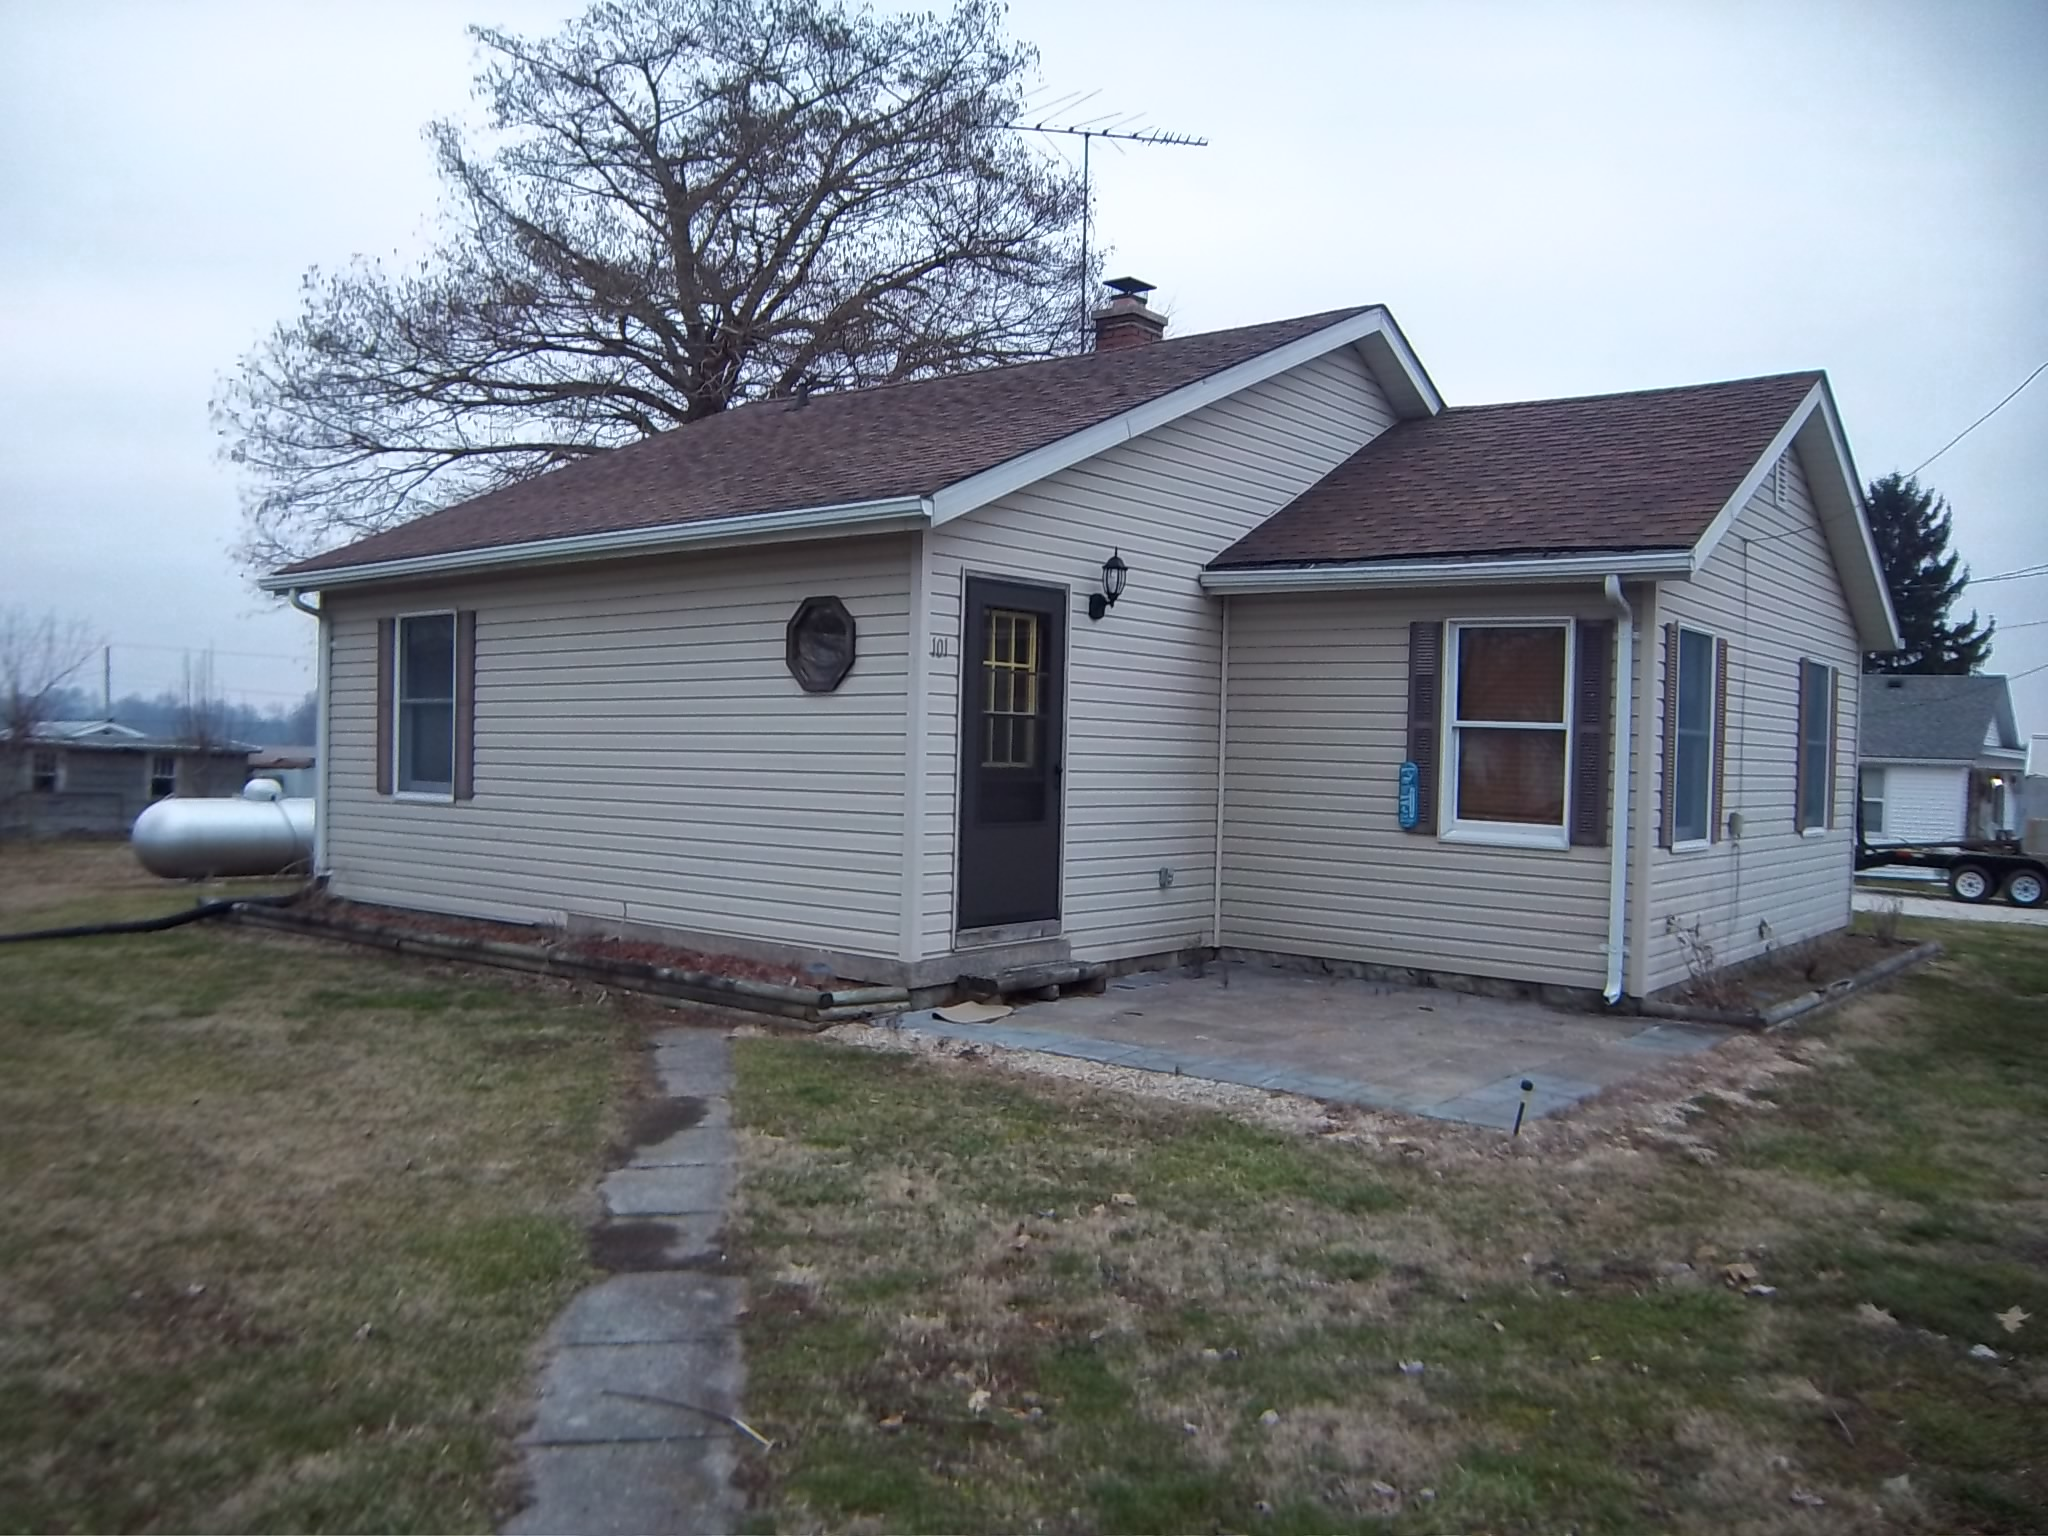 101 N 4th St, Fieldon, Illinois 62031